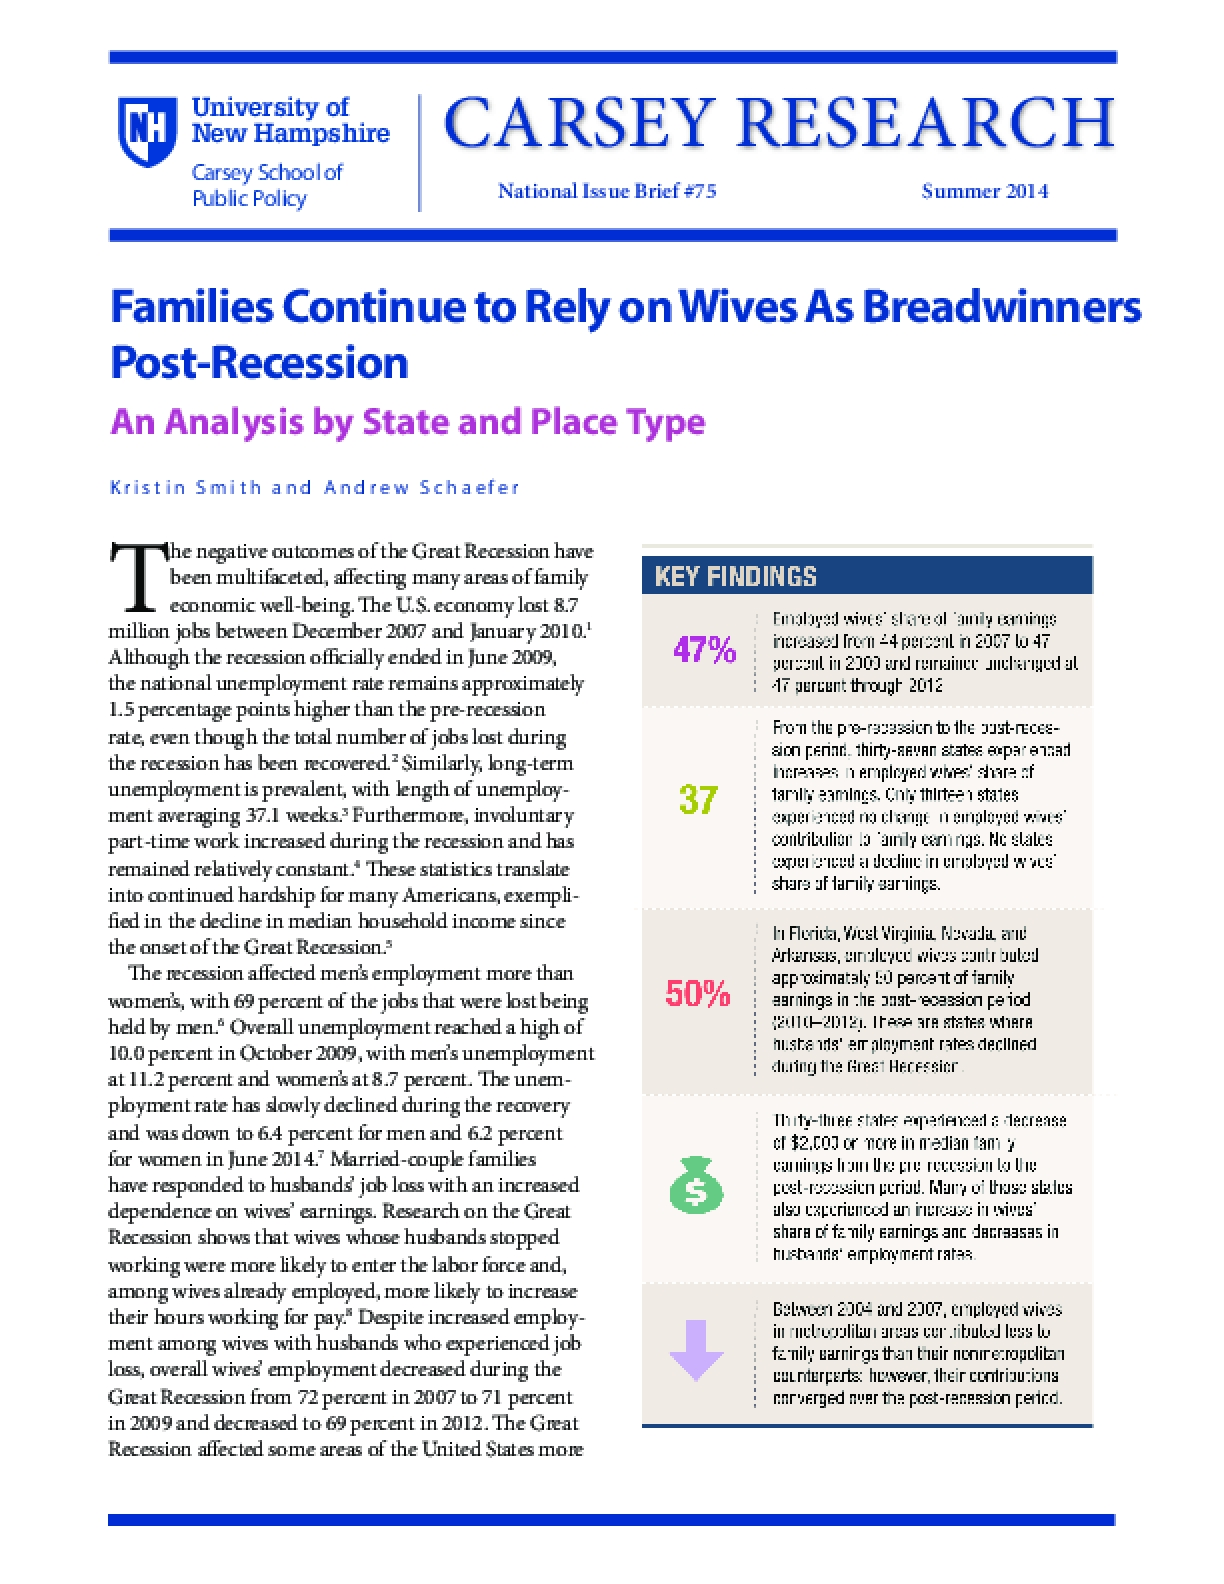 Families Continue to Rely on Wives As Breadwinners Post-Recession